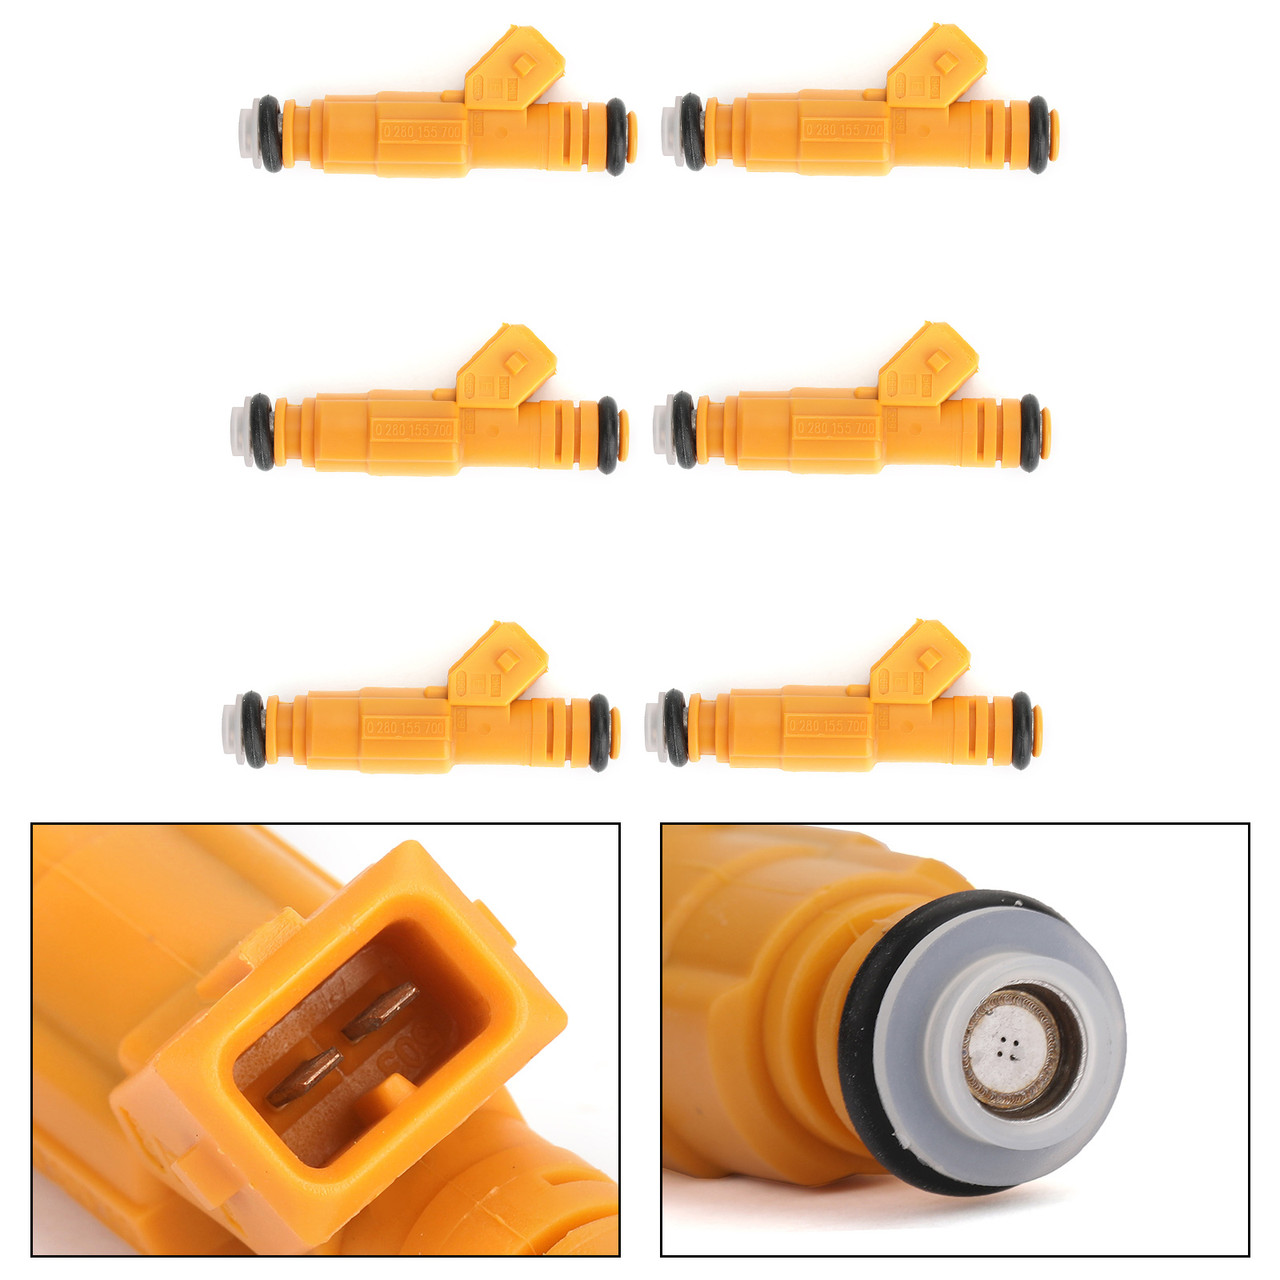 6PCS Fuel Injectors For Cherokee 89-98 Grand Cherokee 93-98 Wrangler 91-98 Comanche 87-91 Yellow